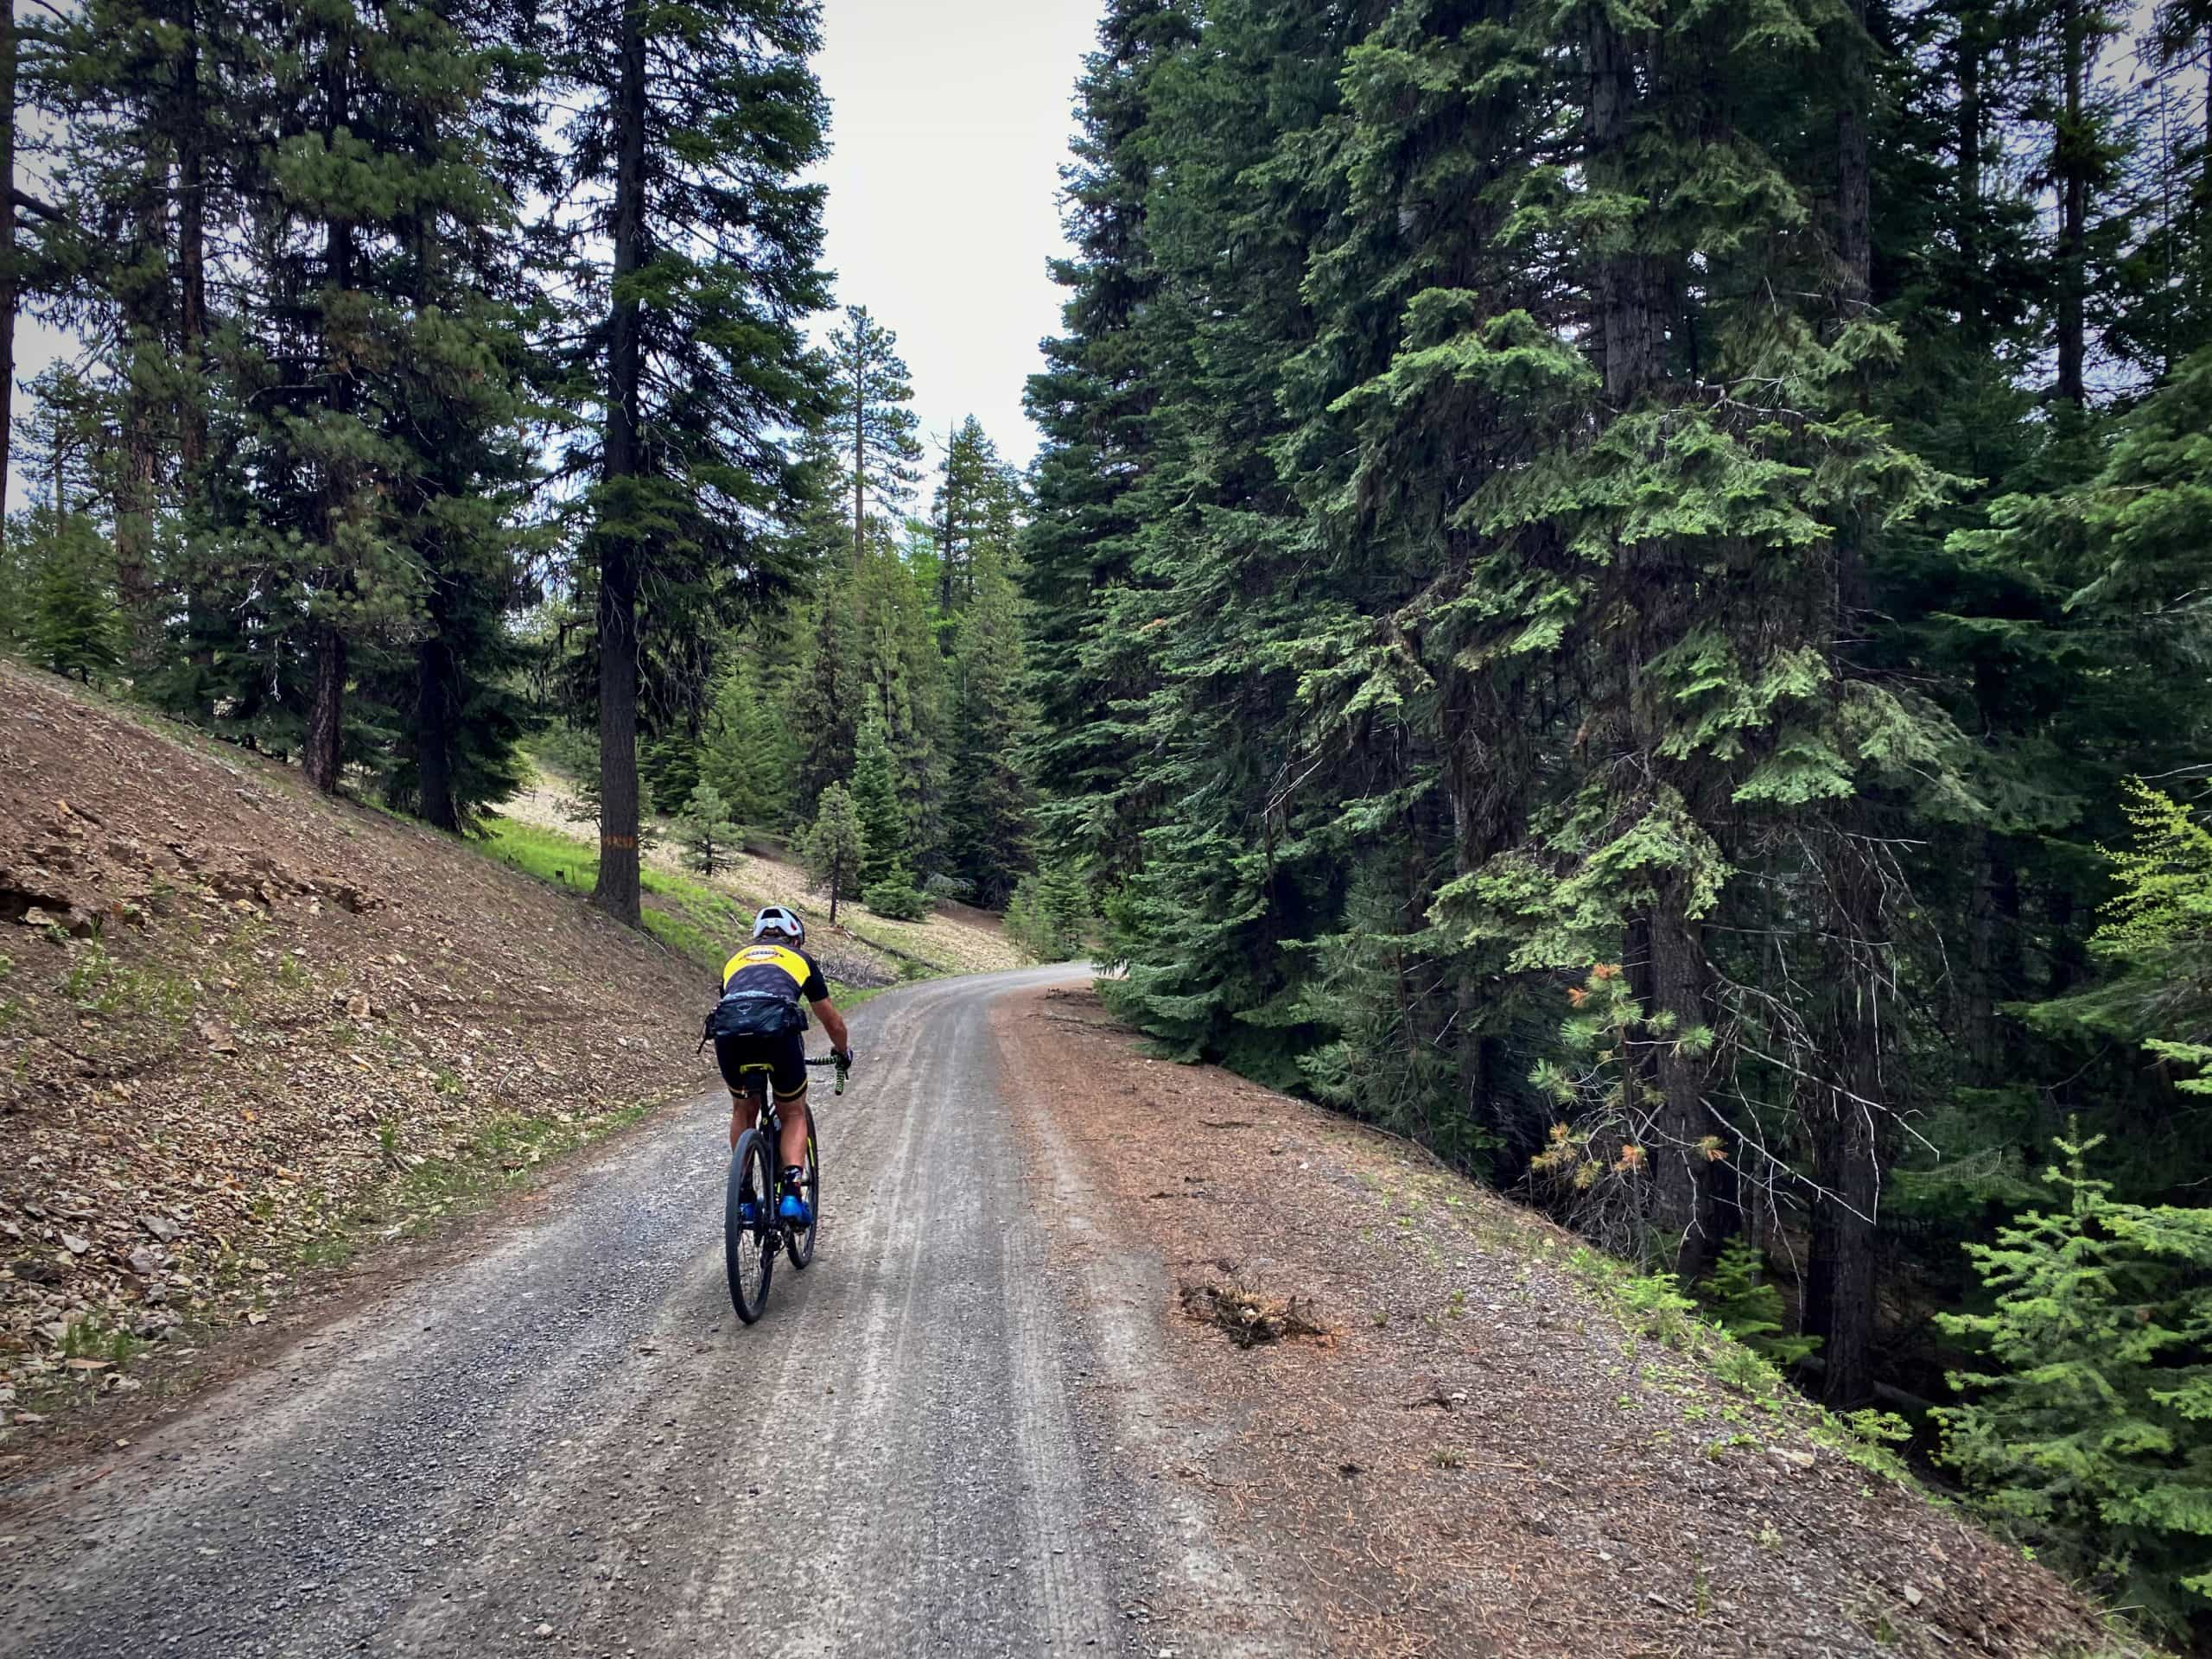 Cyclist on gravel road descending from Scott's Corner in the Ochoco National forest.